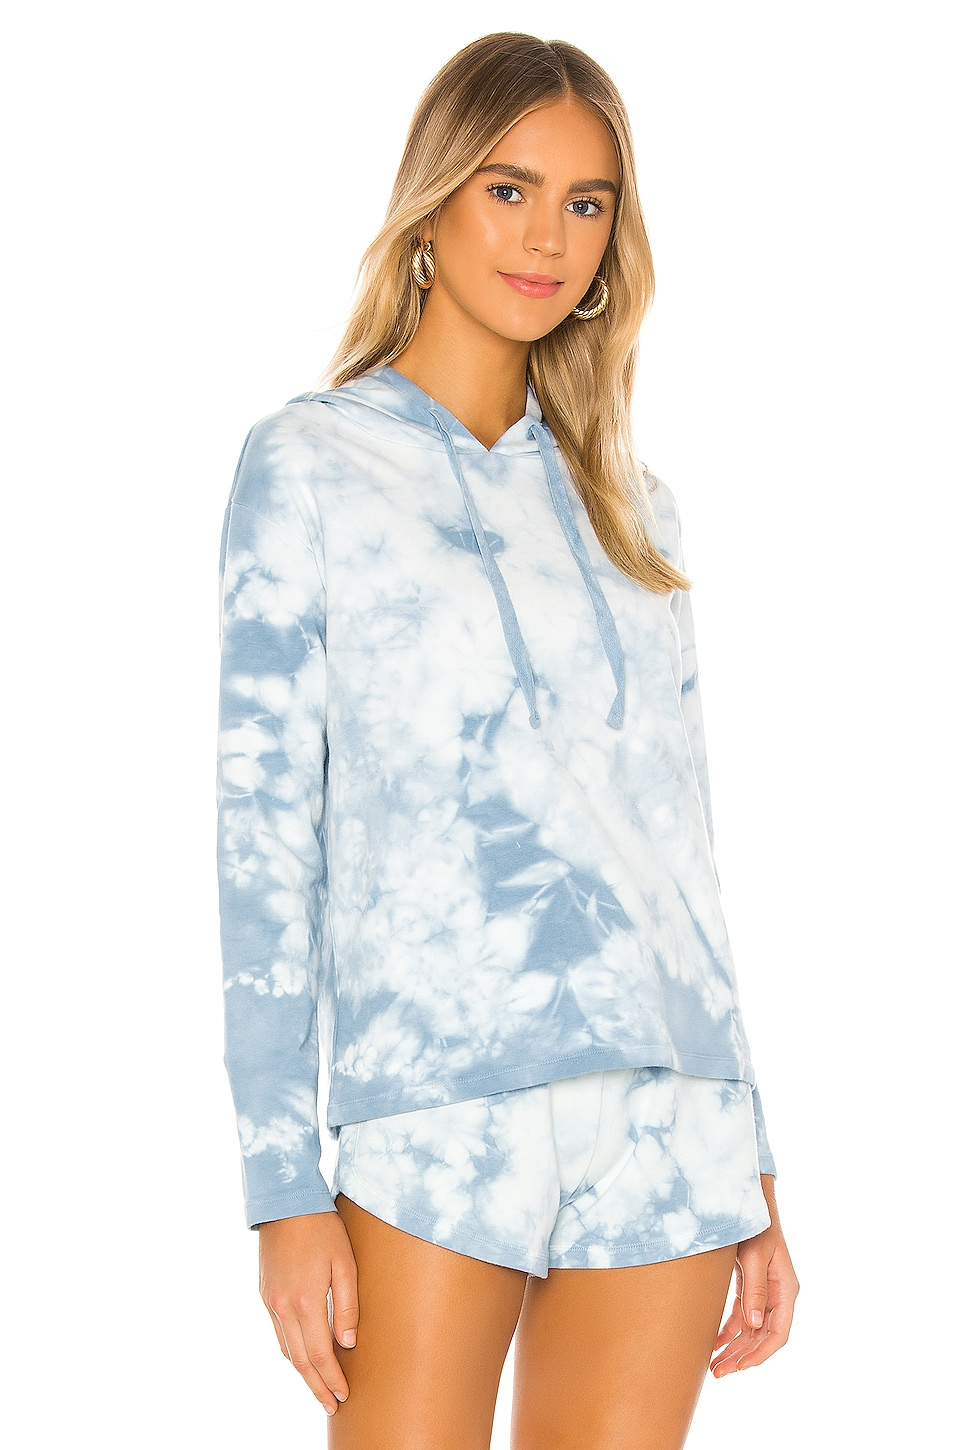 Tie Dye Terry Sweatshirt, view 2, click to view large image.